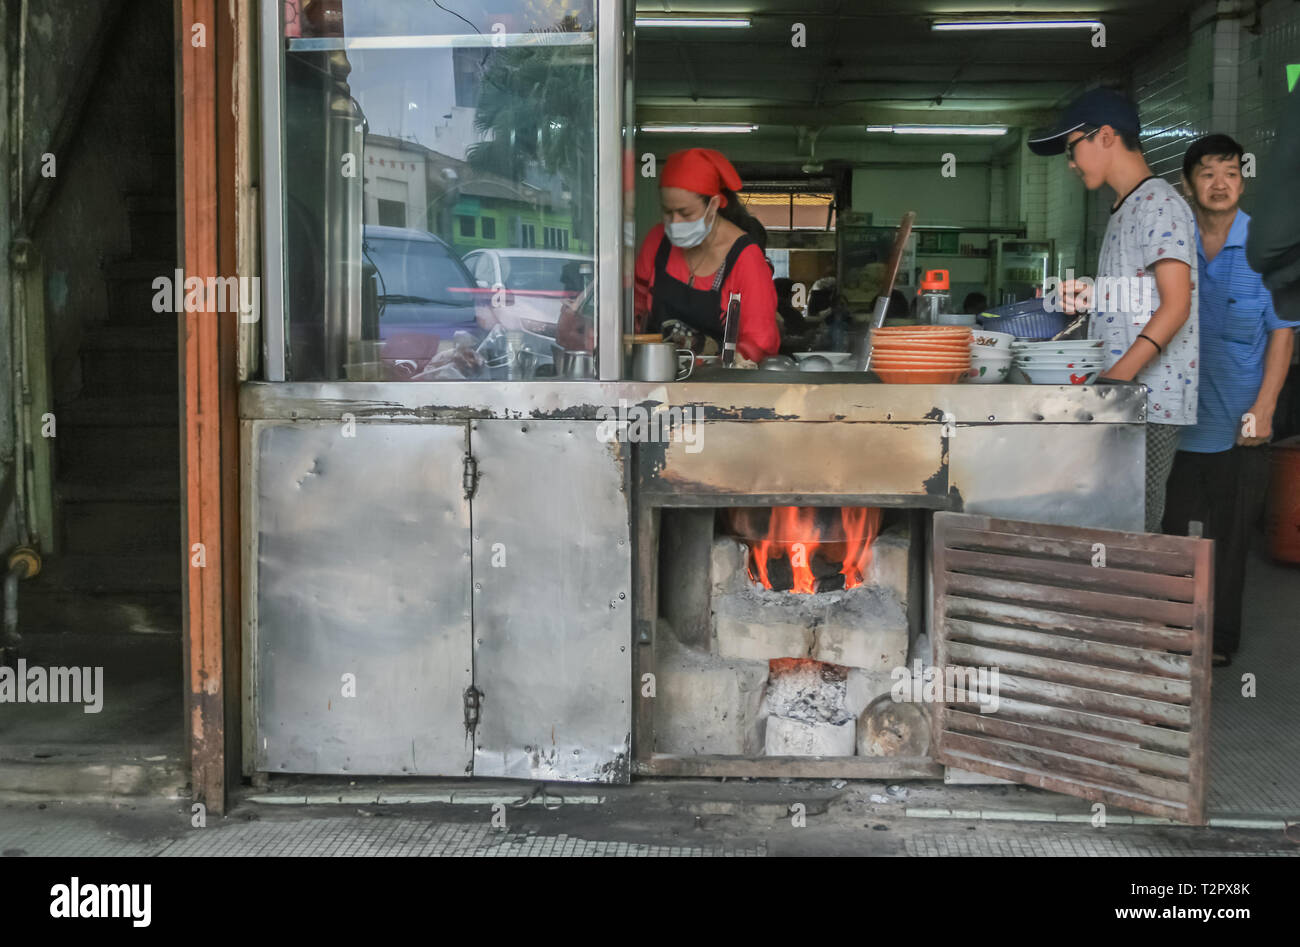 Lady cooking food in a traditional Chinese shophouse, Johor Bahru, Malaysia - Stock Image